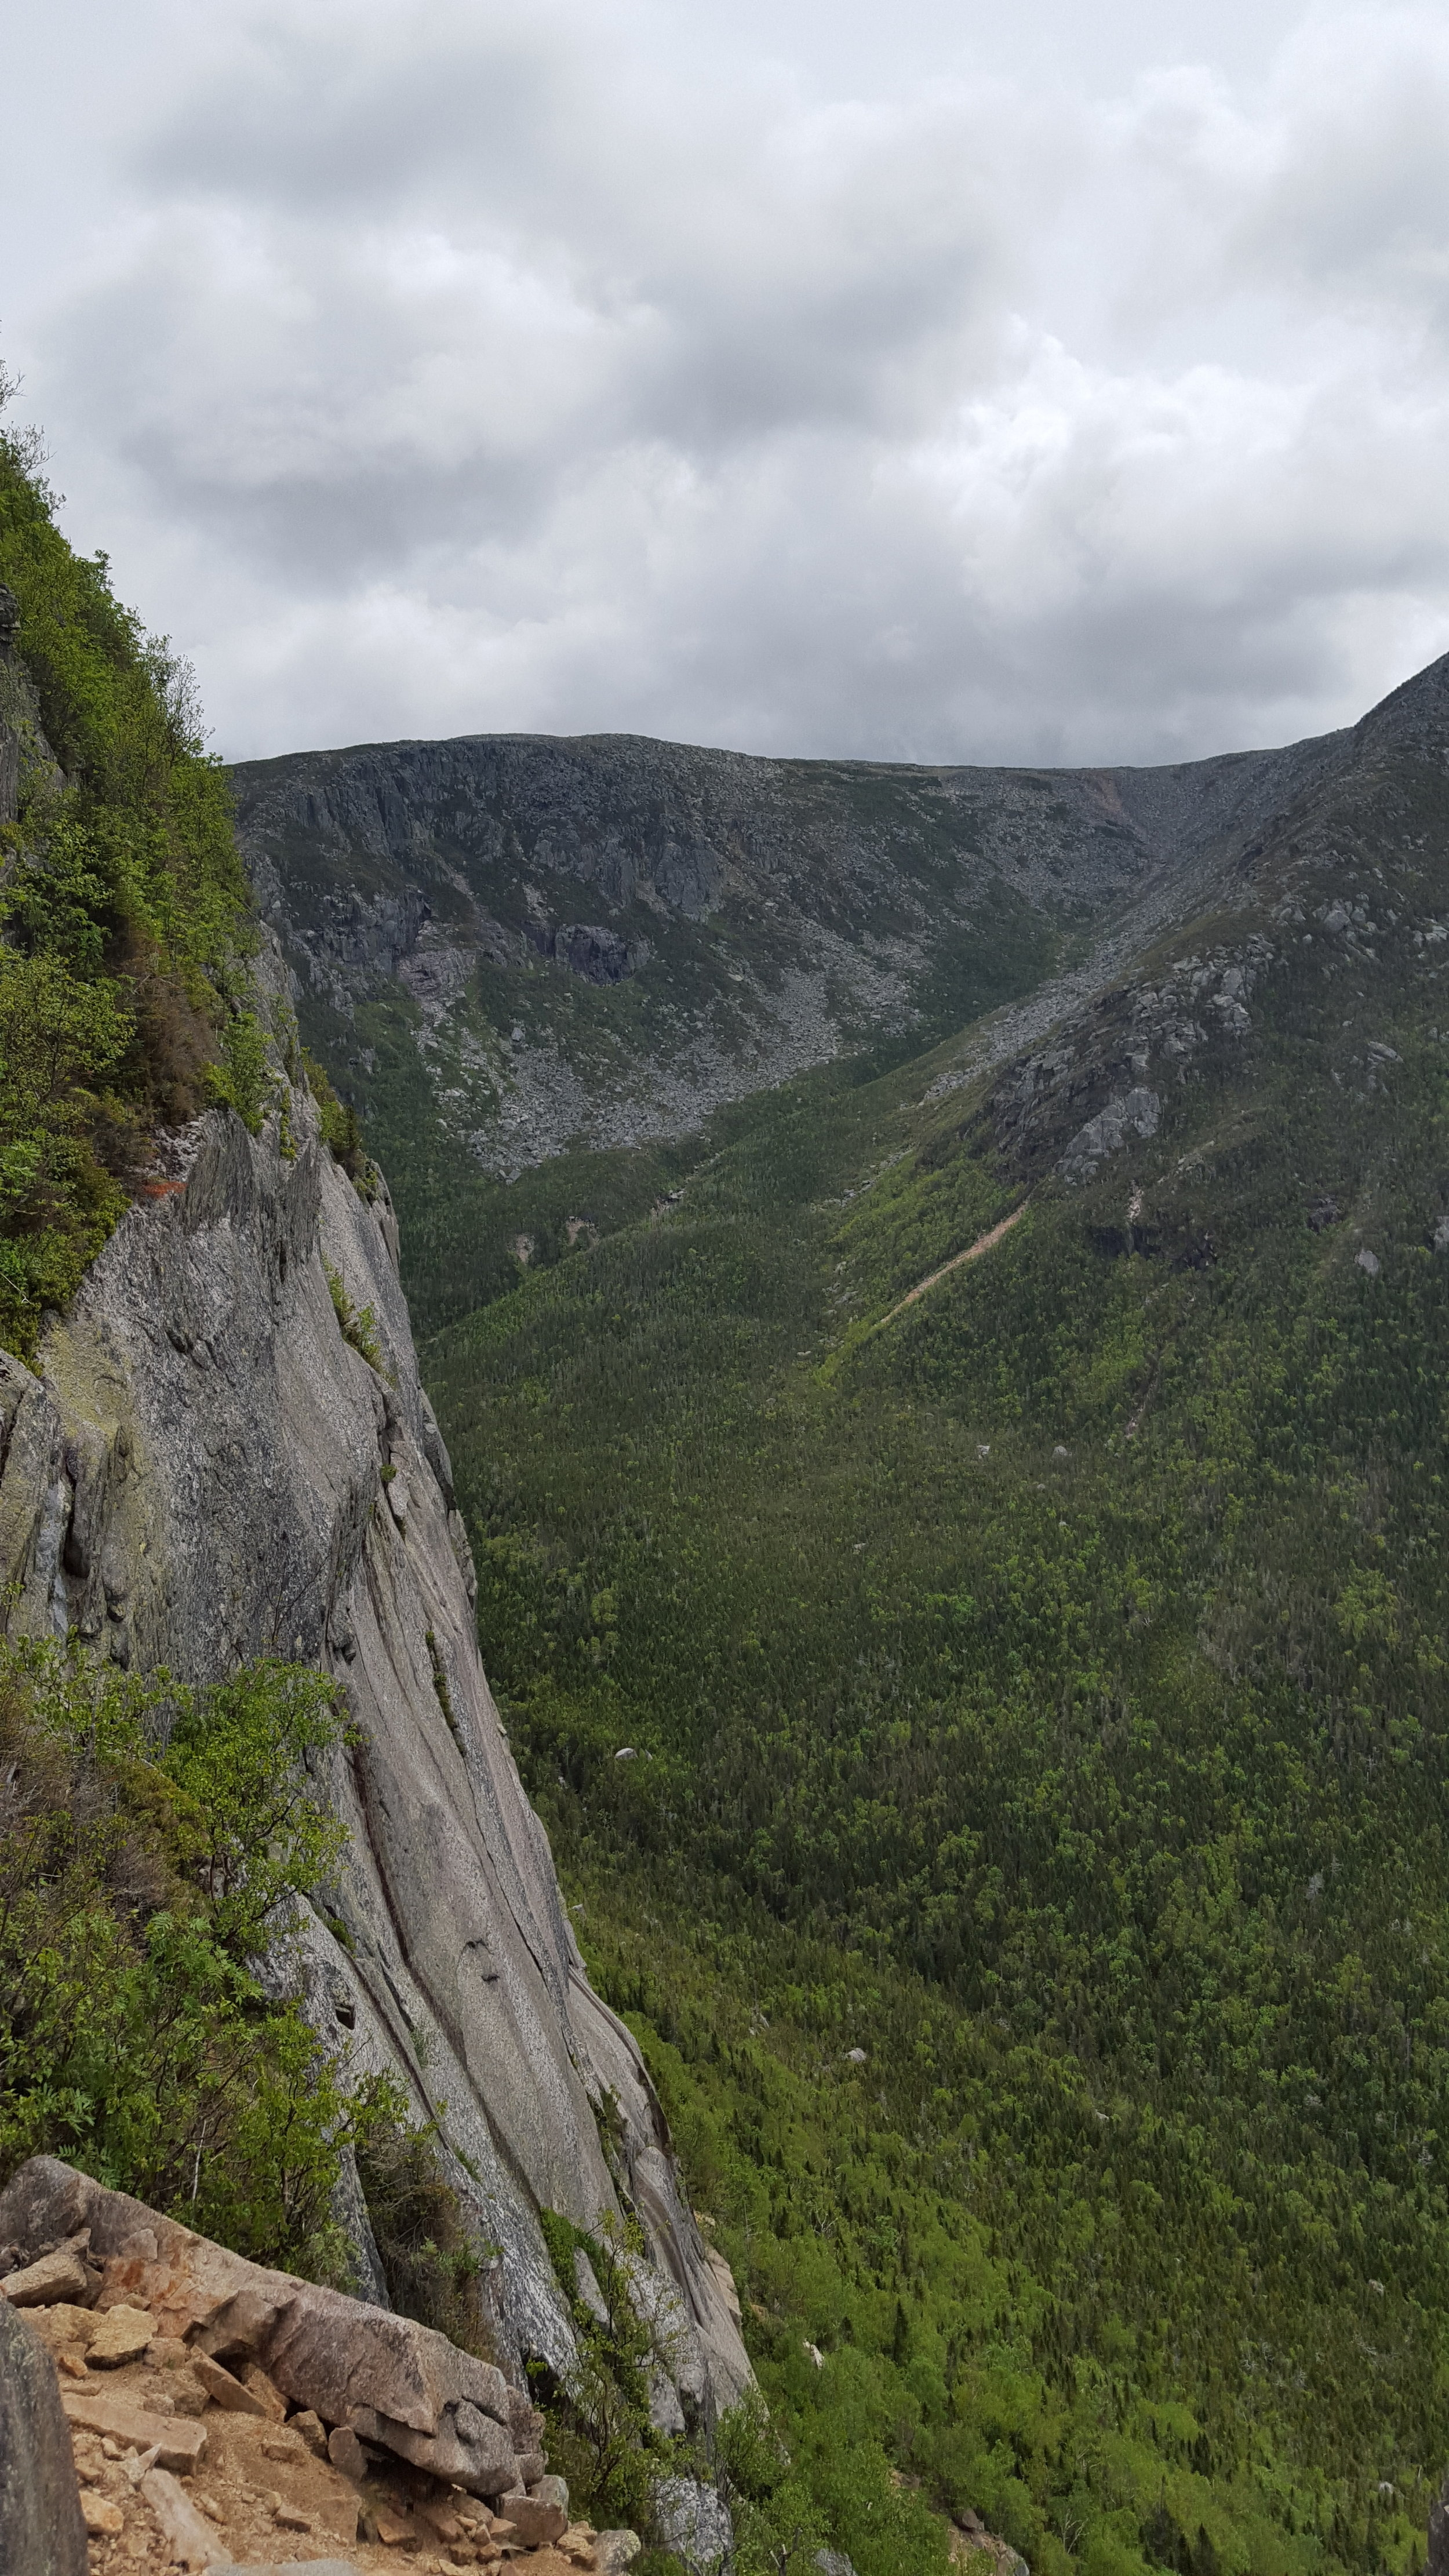 The view from the first cliffs across Witherle Ravine